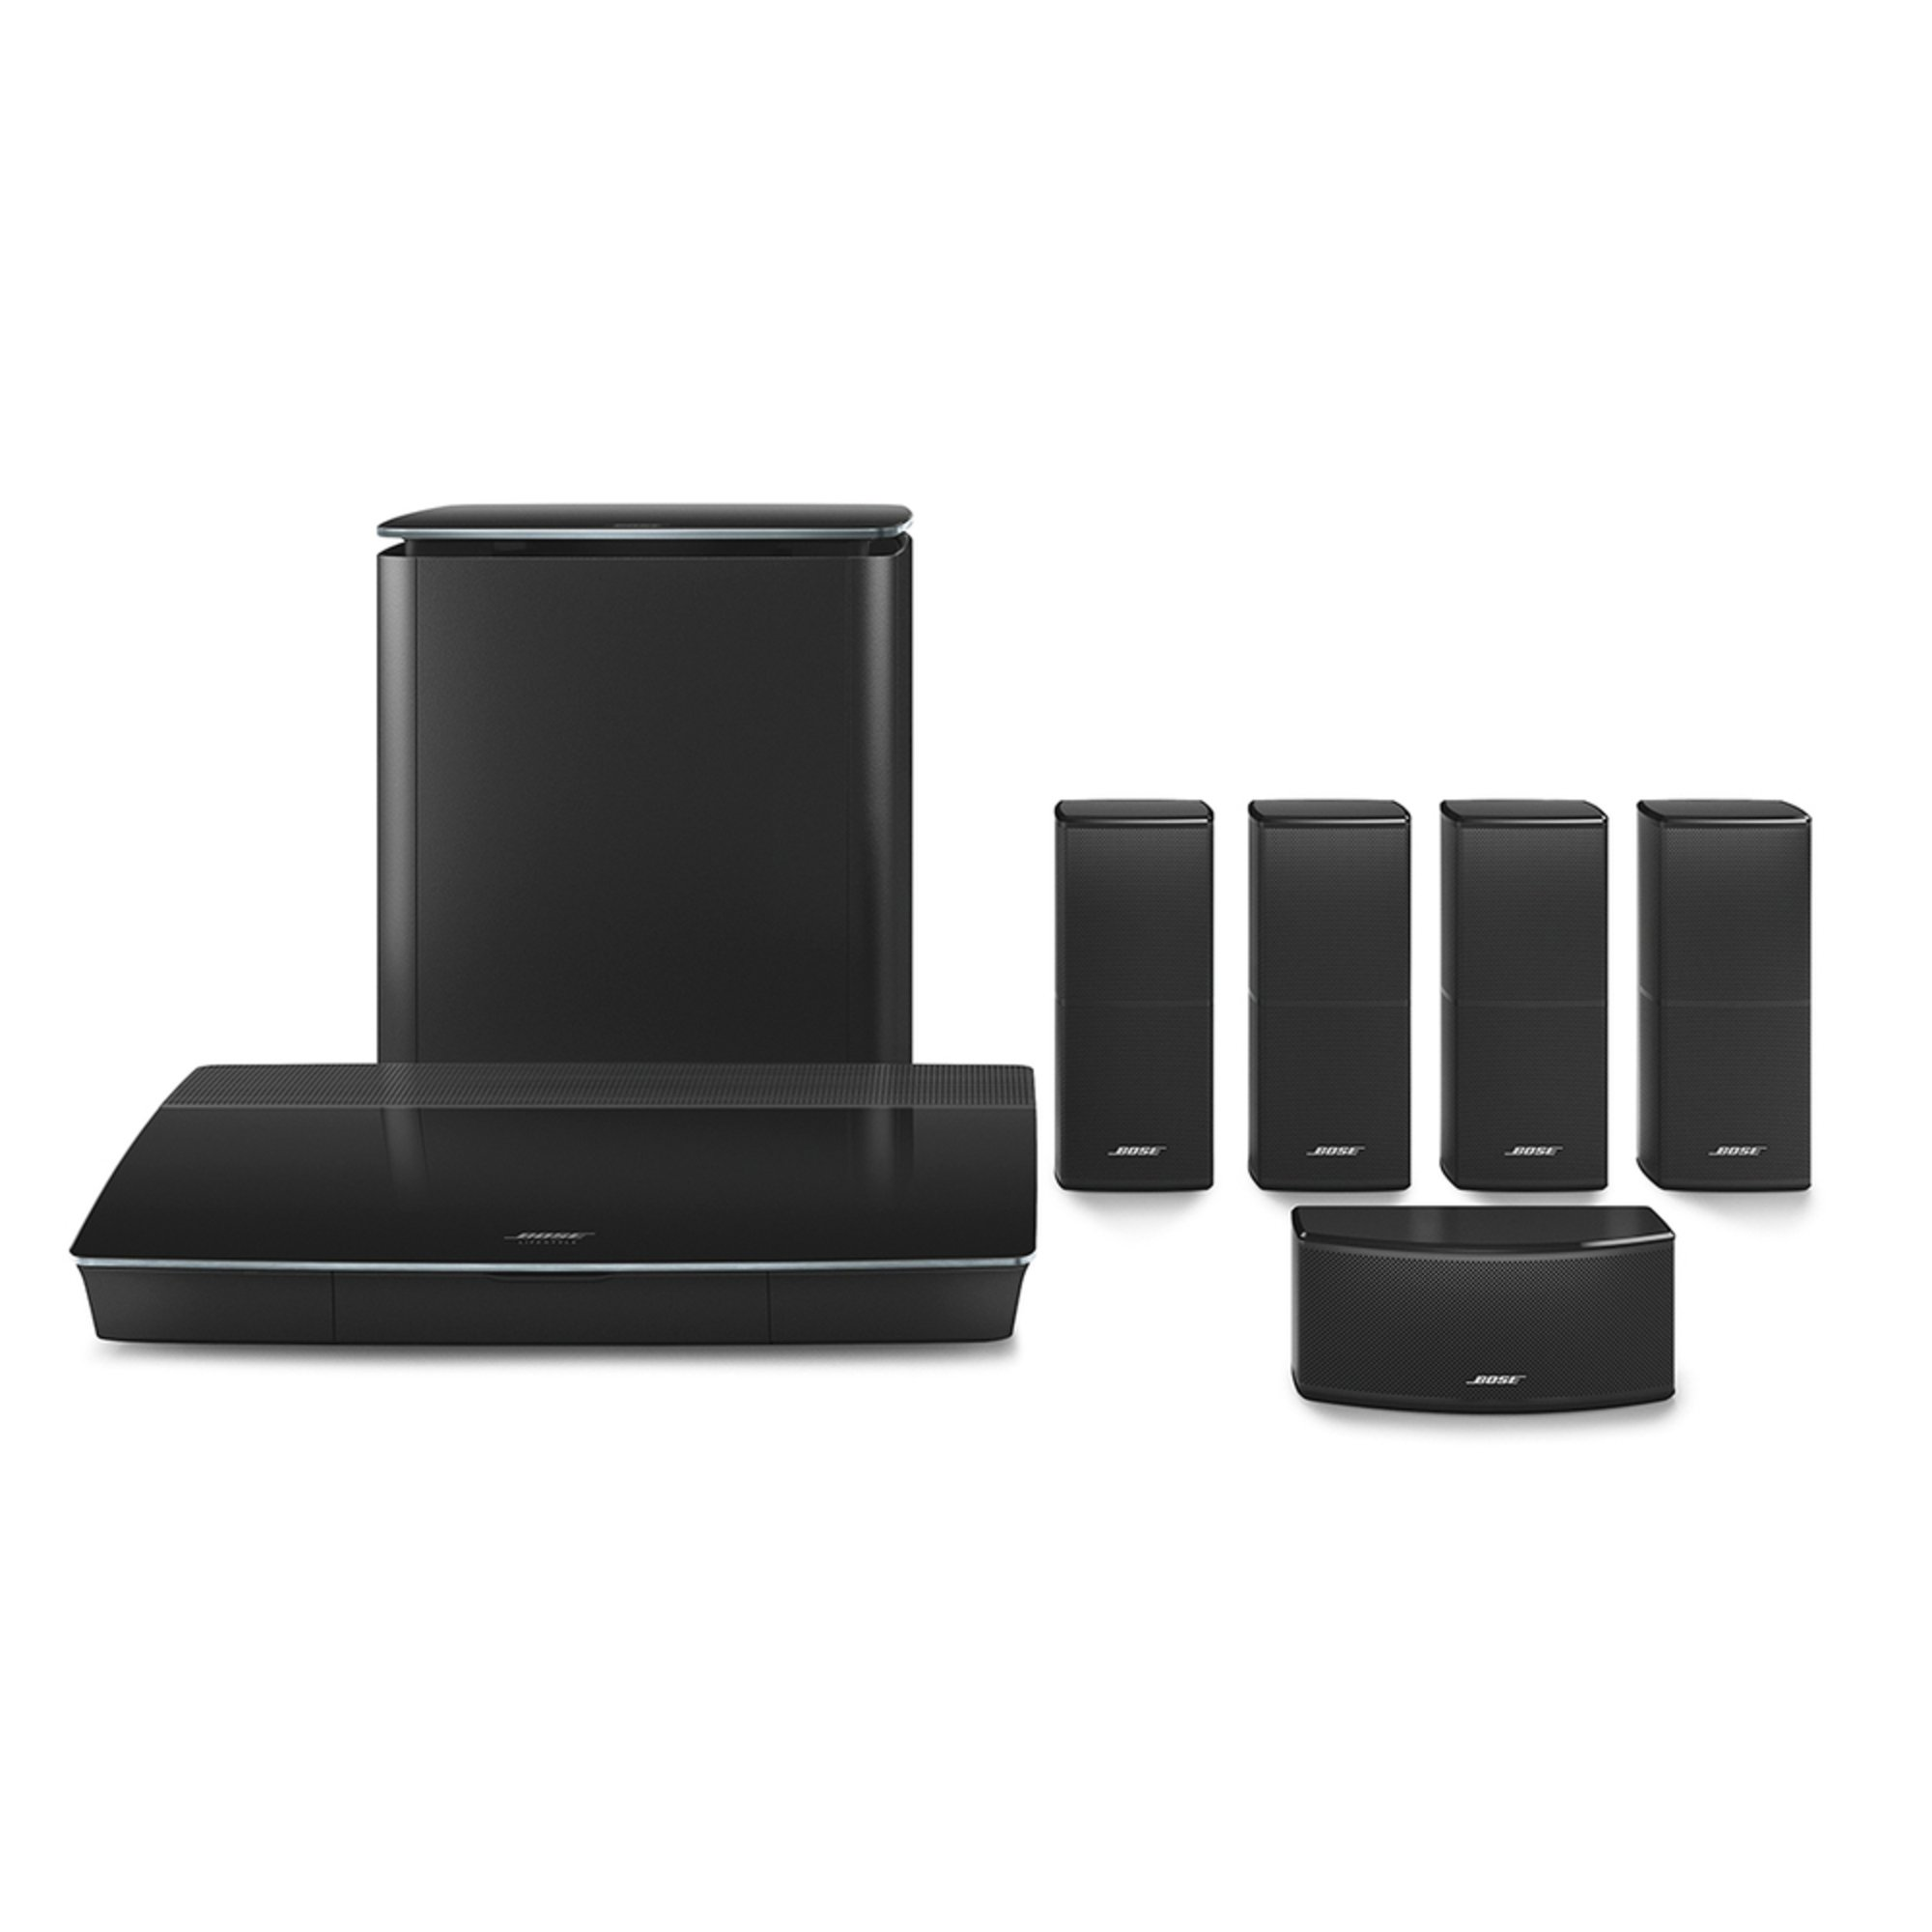 hight resolution of bose bose lifestyle 600 home entertainment system